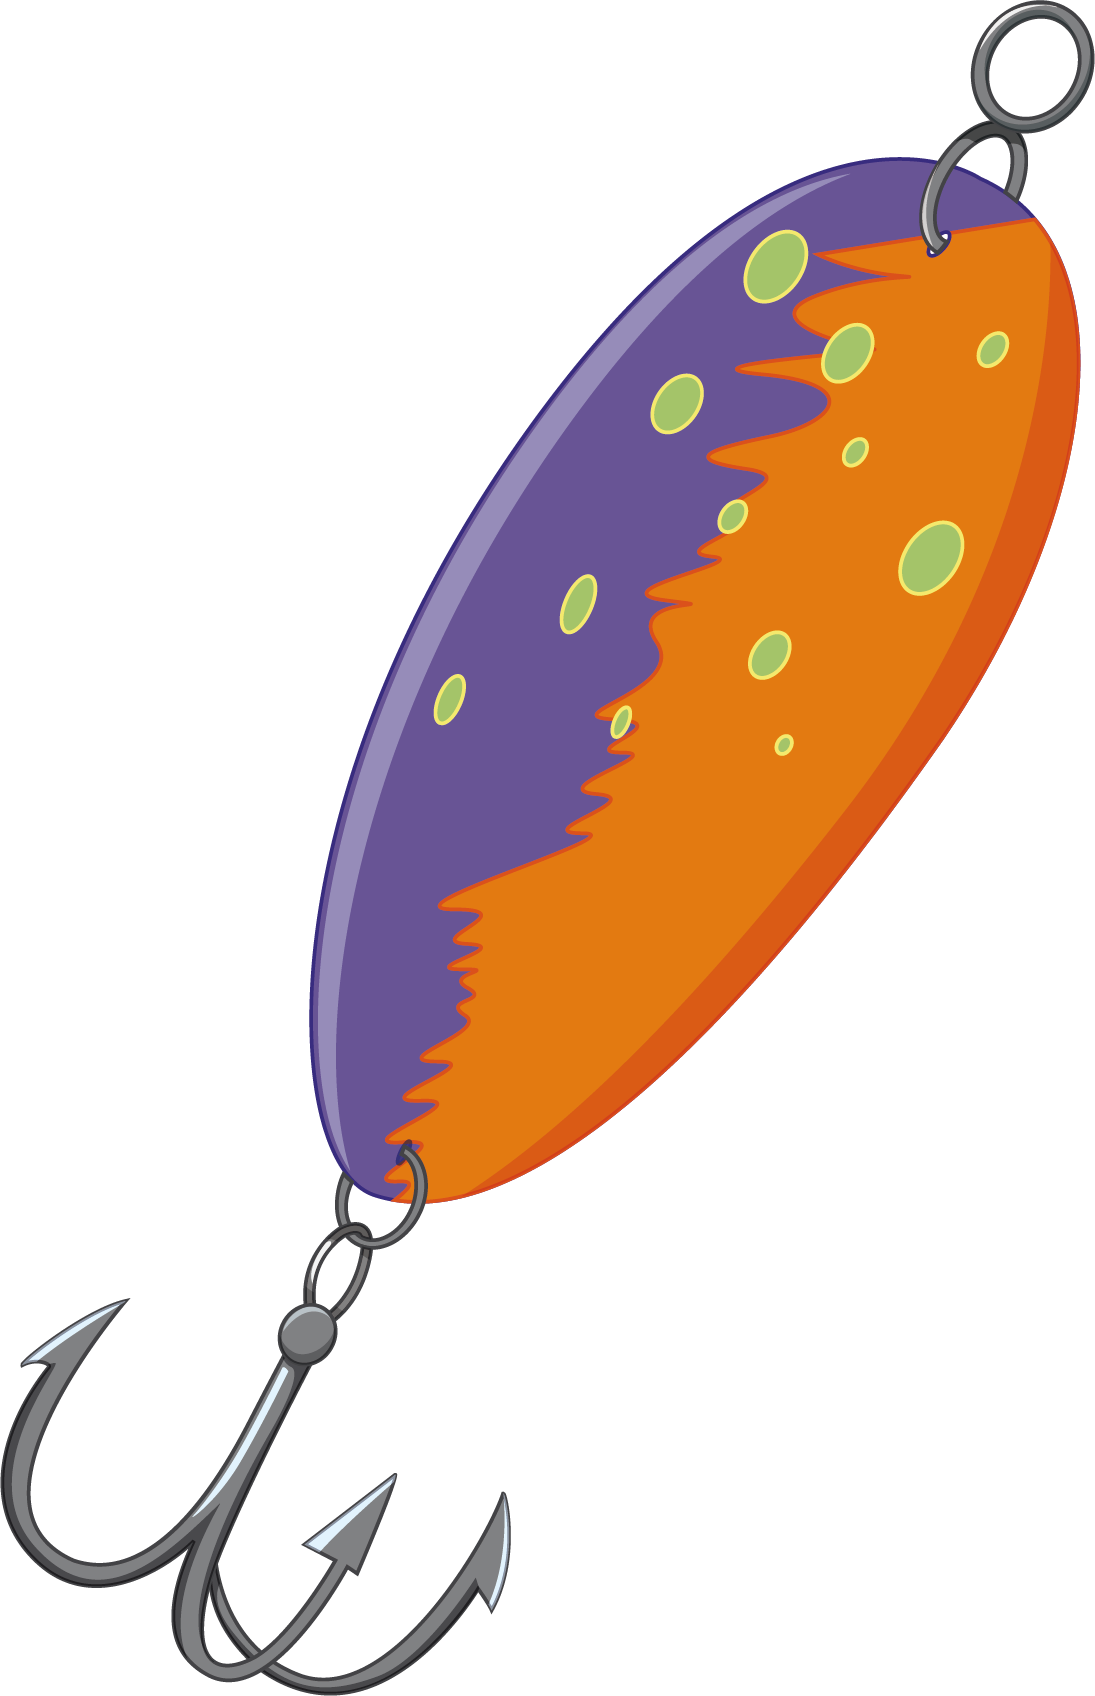 Fish hook with worm clipart png black and white stock Fishing Lure Clipart at GetDrawings.com | Free for personal use ... png black and white stock